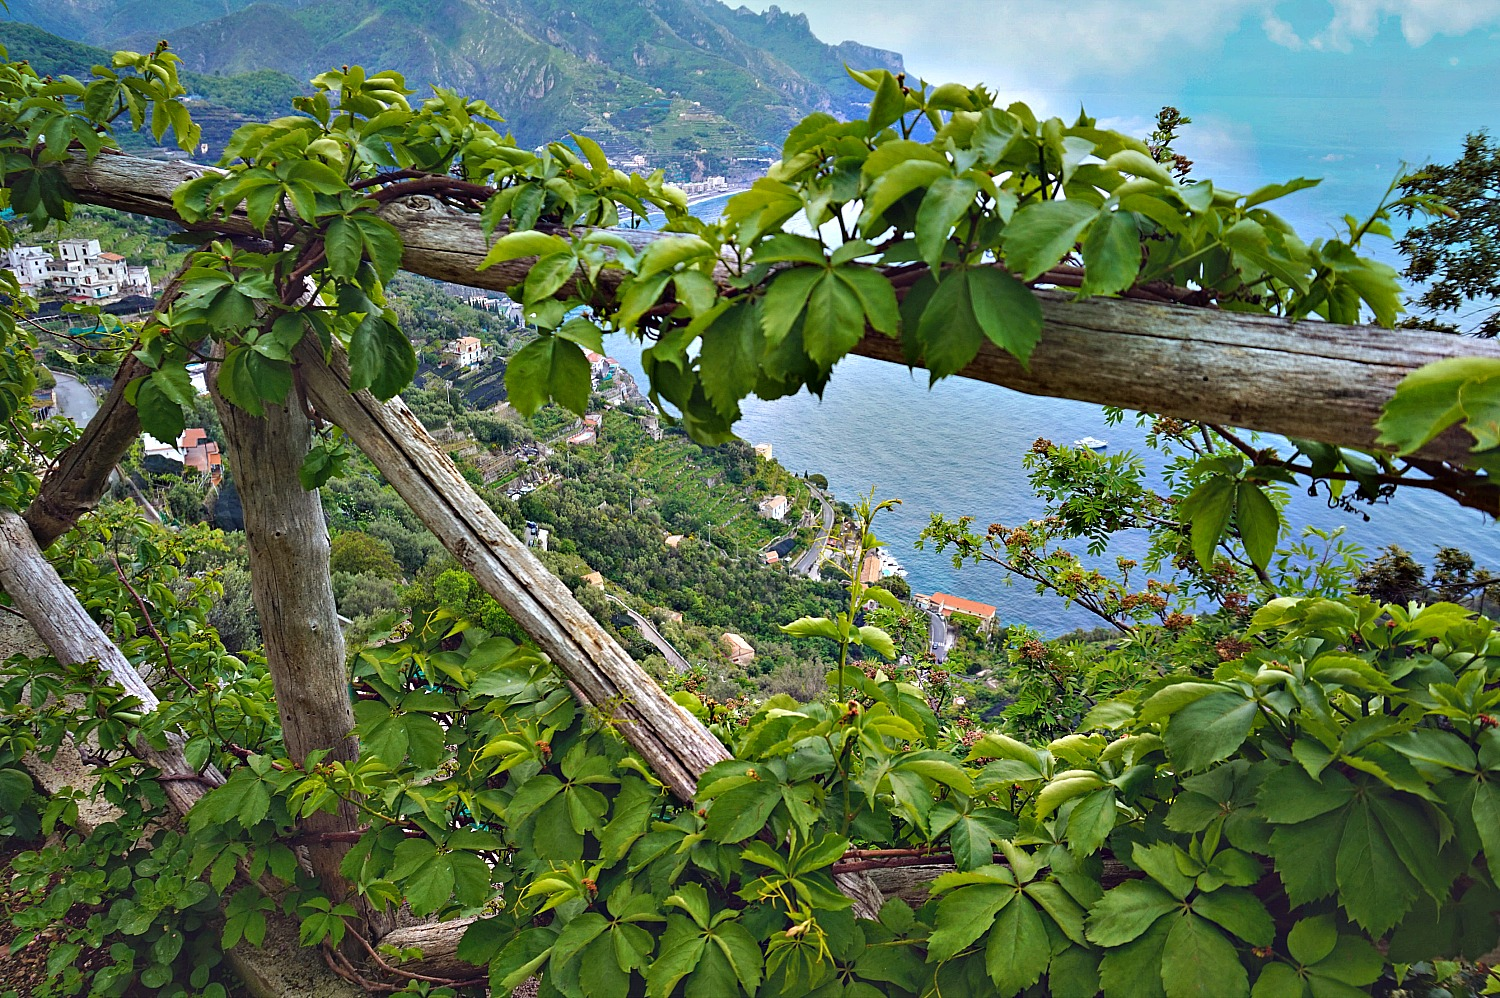 Peeking through a natural fence in Ravello Italy.